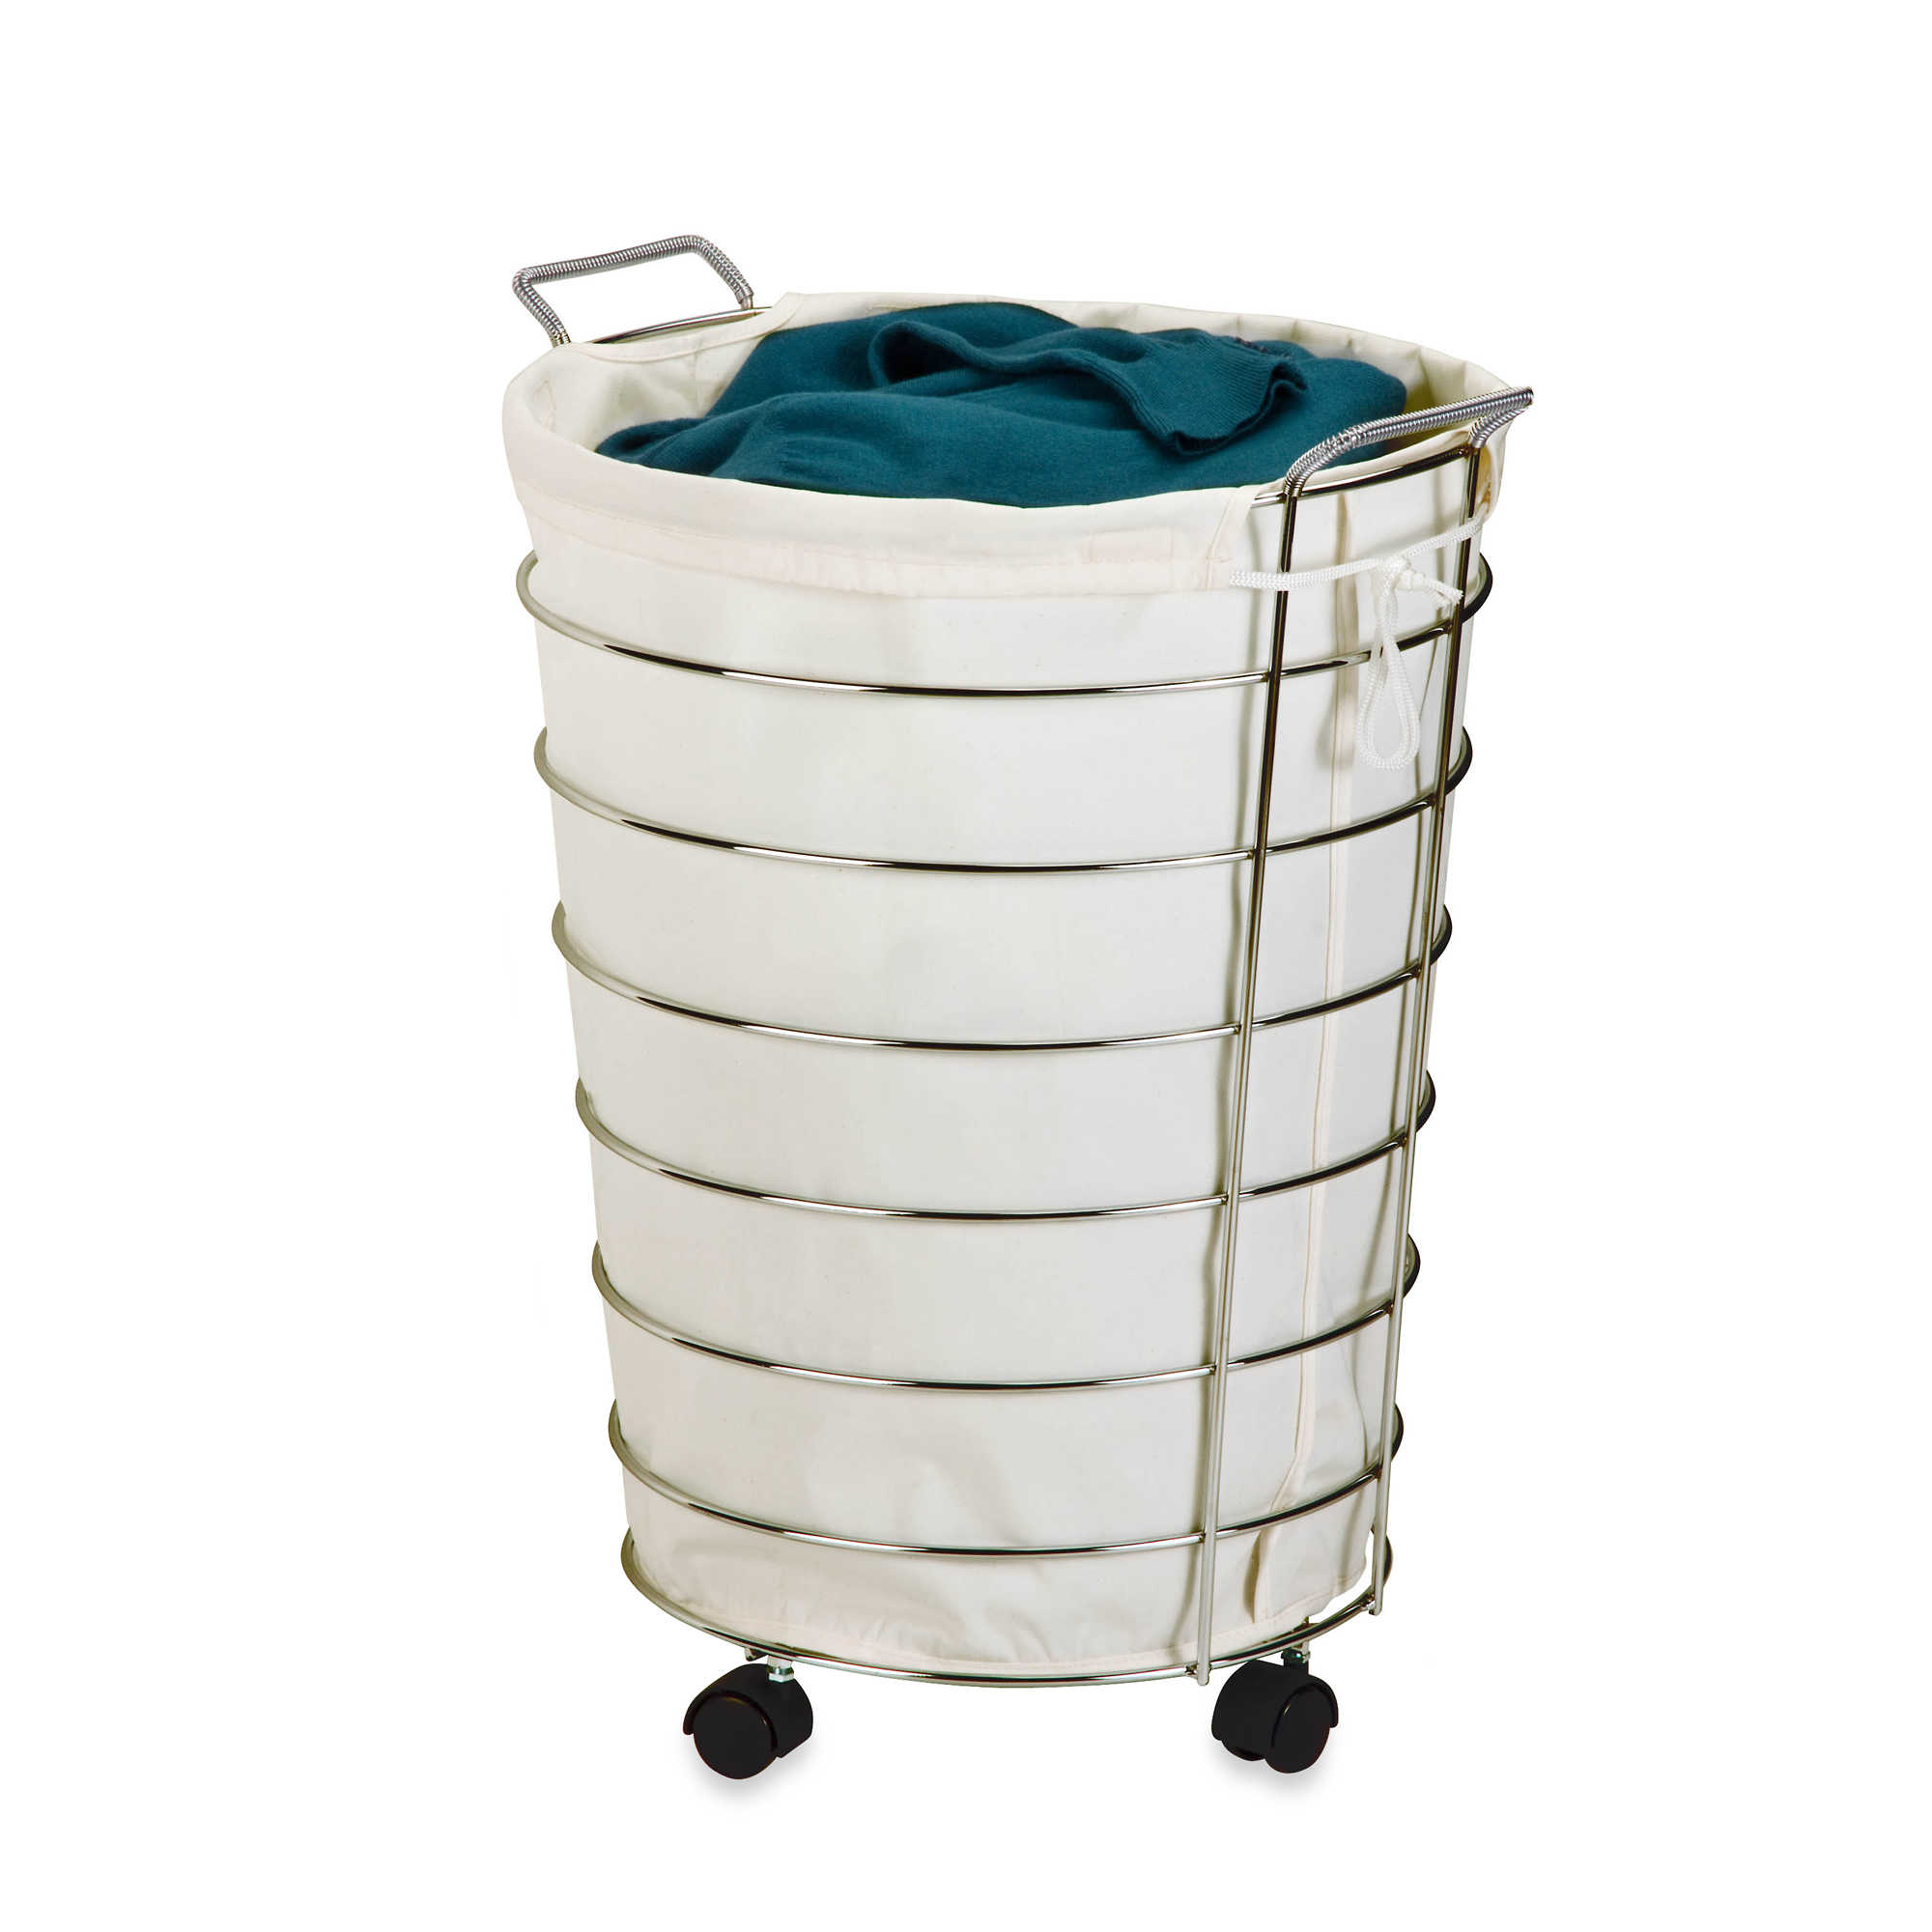 Designer Clothes Hampers Hamper With Wheels For Easy Moving Linen Homesfeed